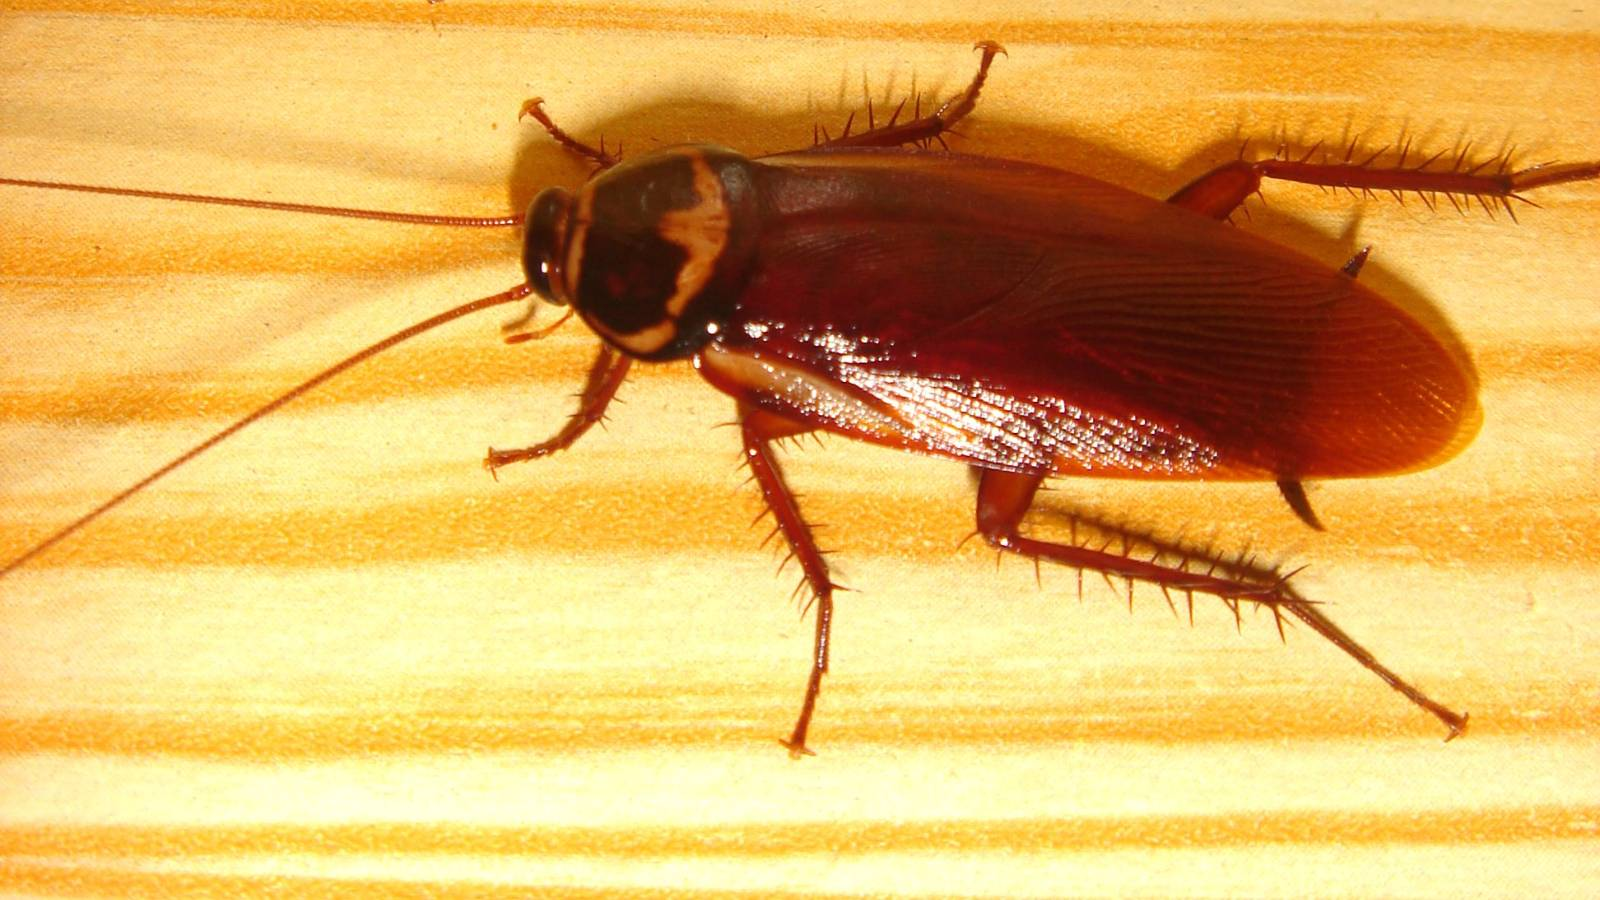 Cockroaches' evolution process is creating die-hard insects